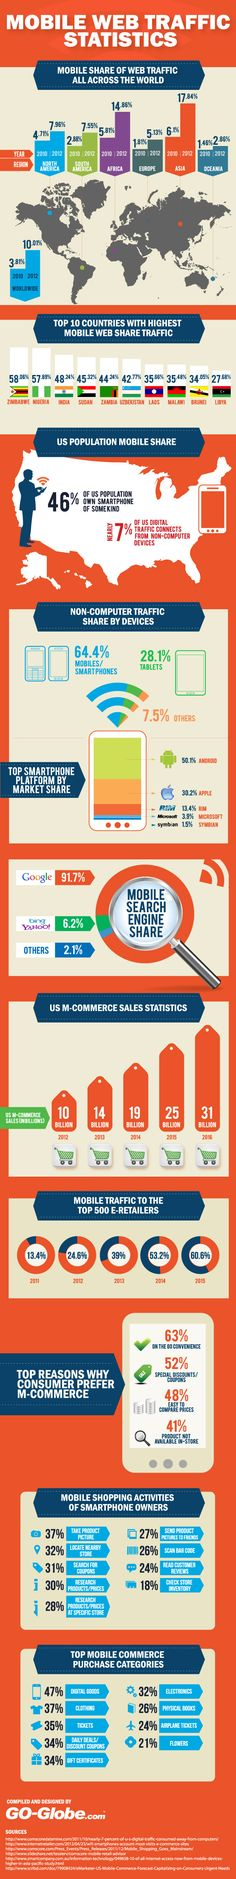 Mobile Web Traffic Statistics